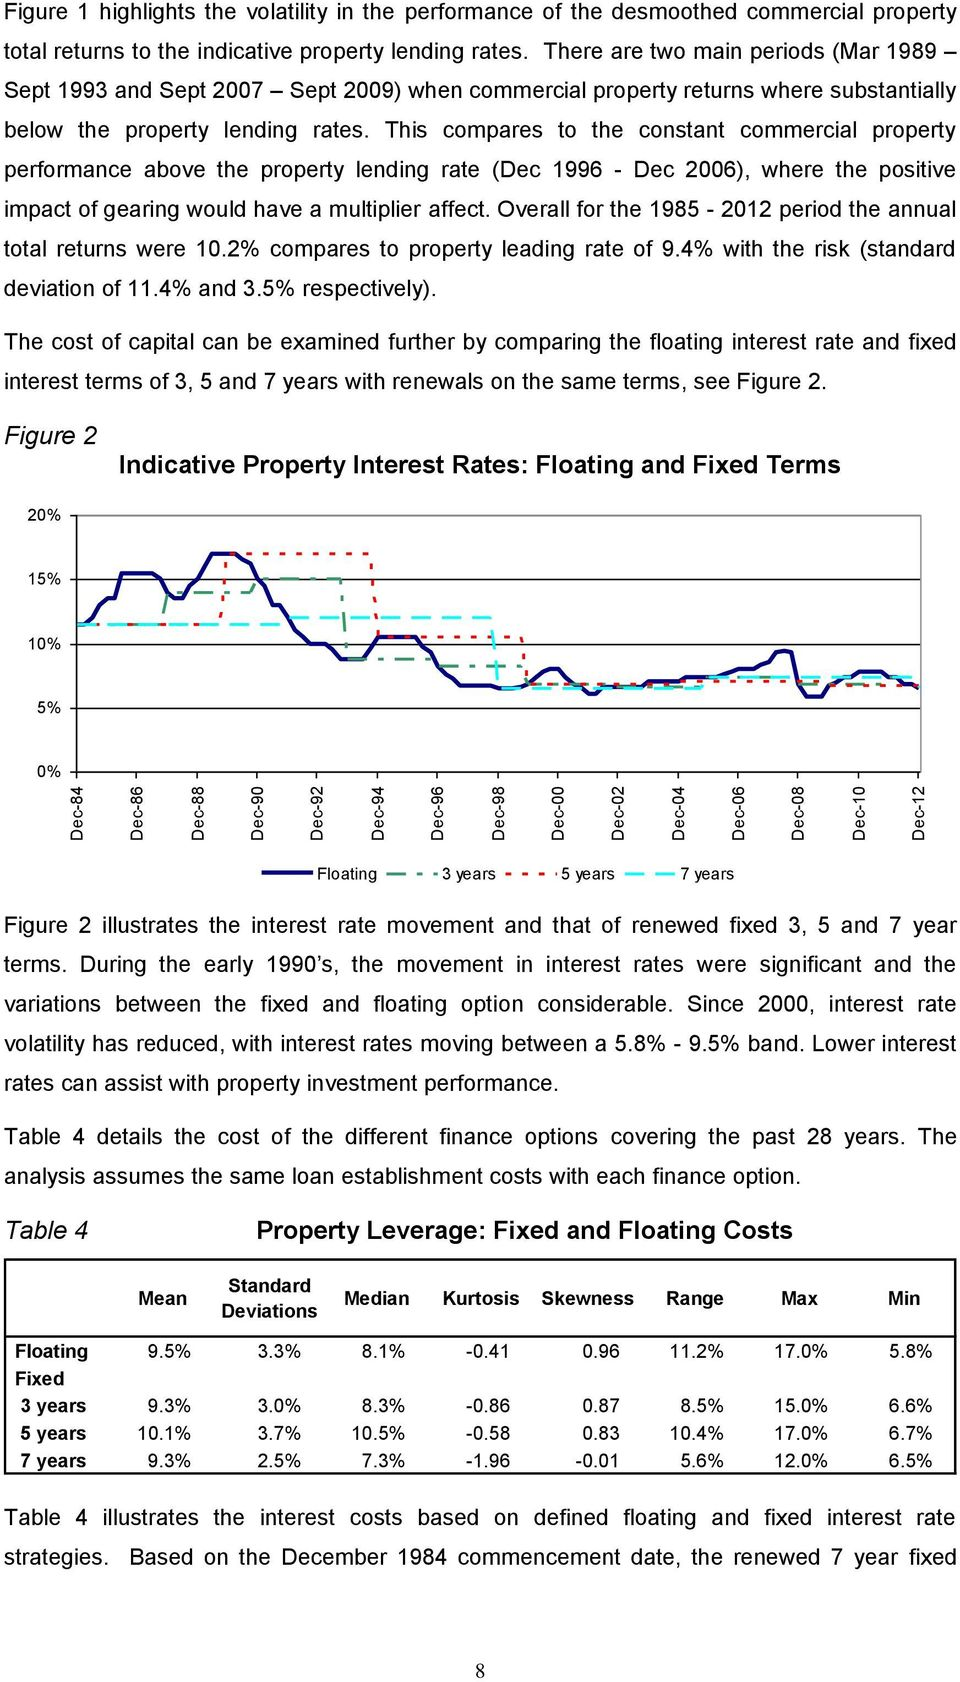 There are two main periods (Mar 1989 Sept 1993 and Sept 2007 Sept 2009) when commercial property returns where substantially below the property lending rates.